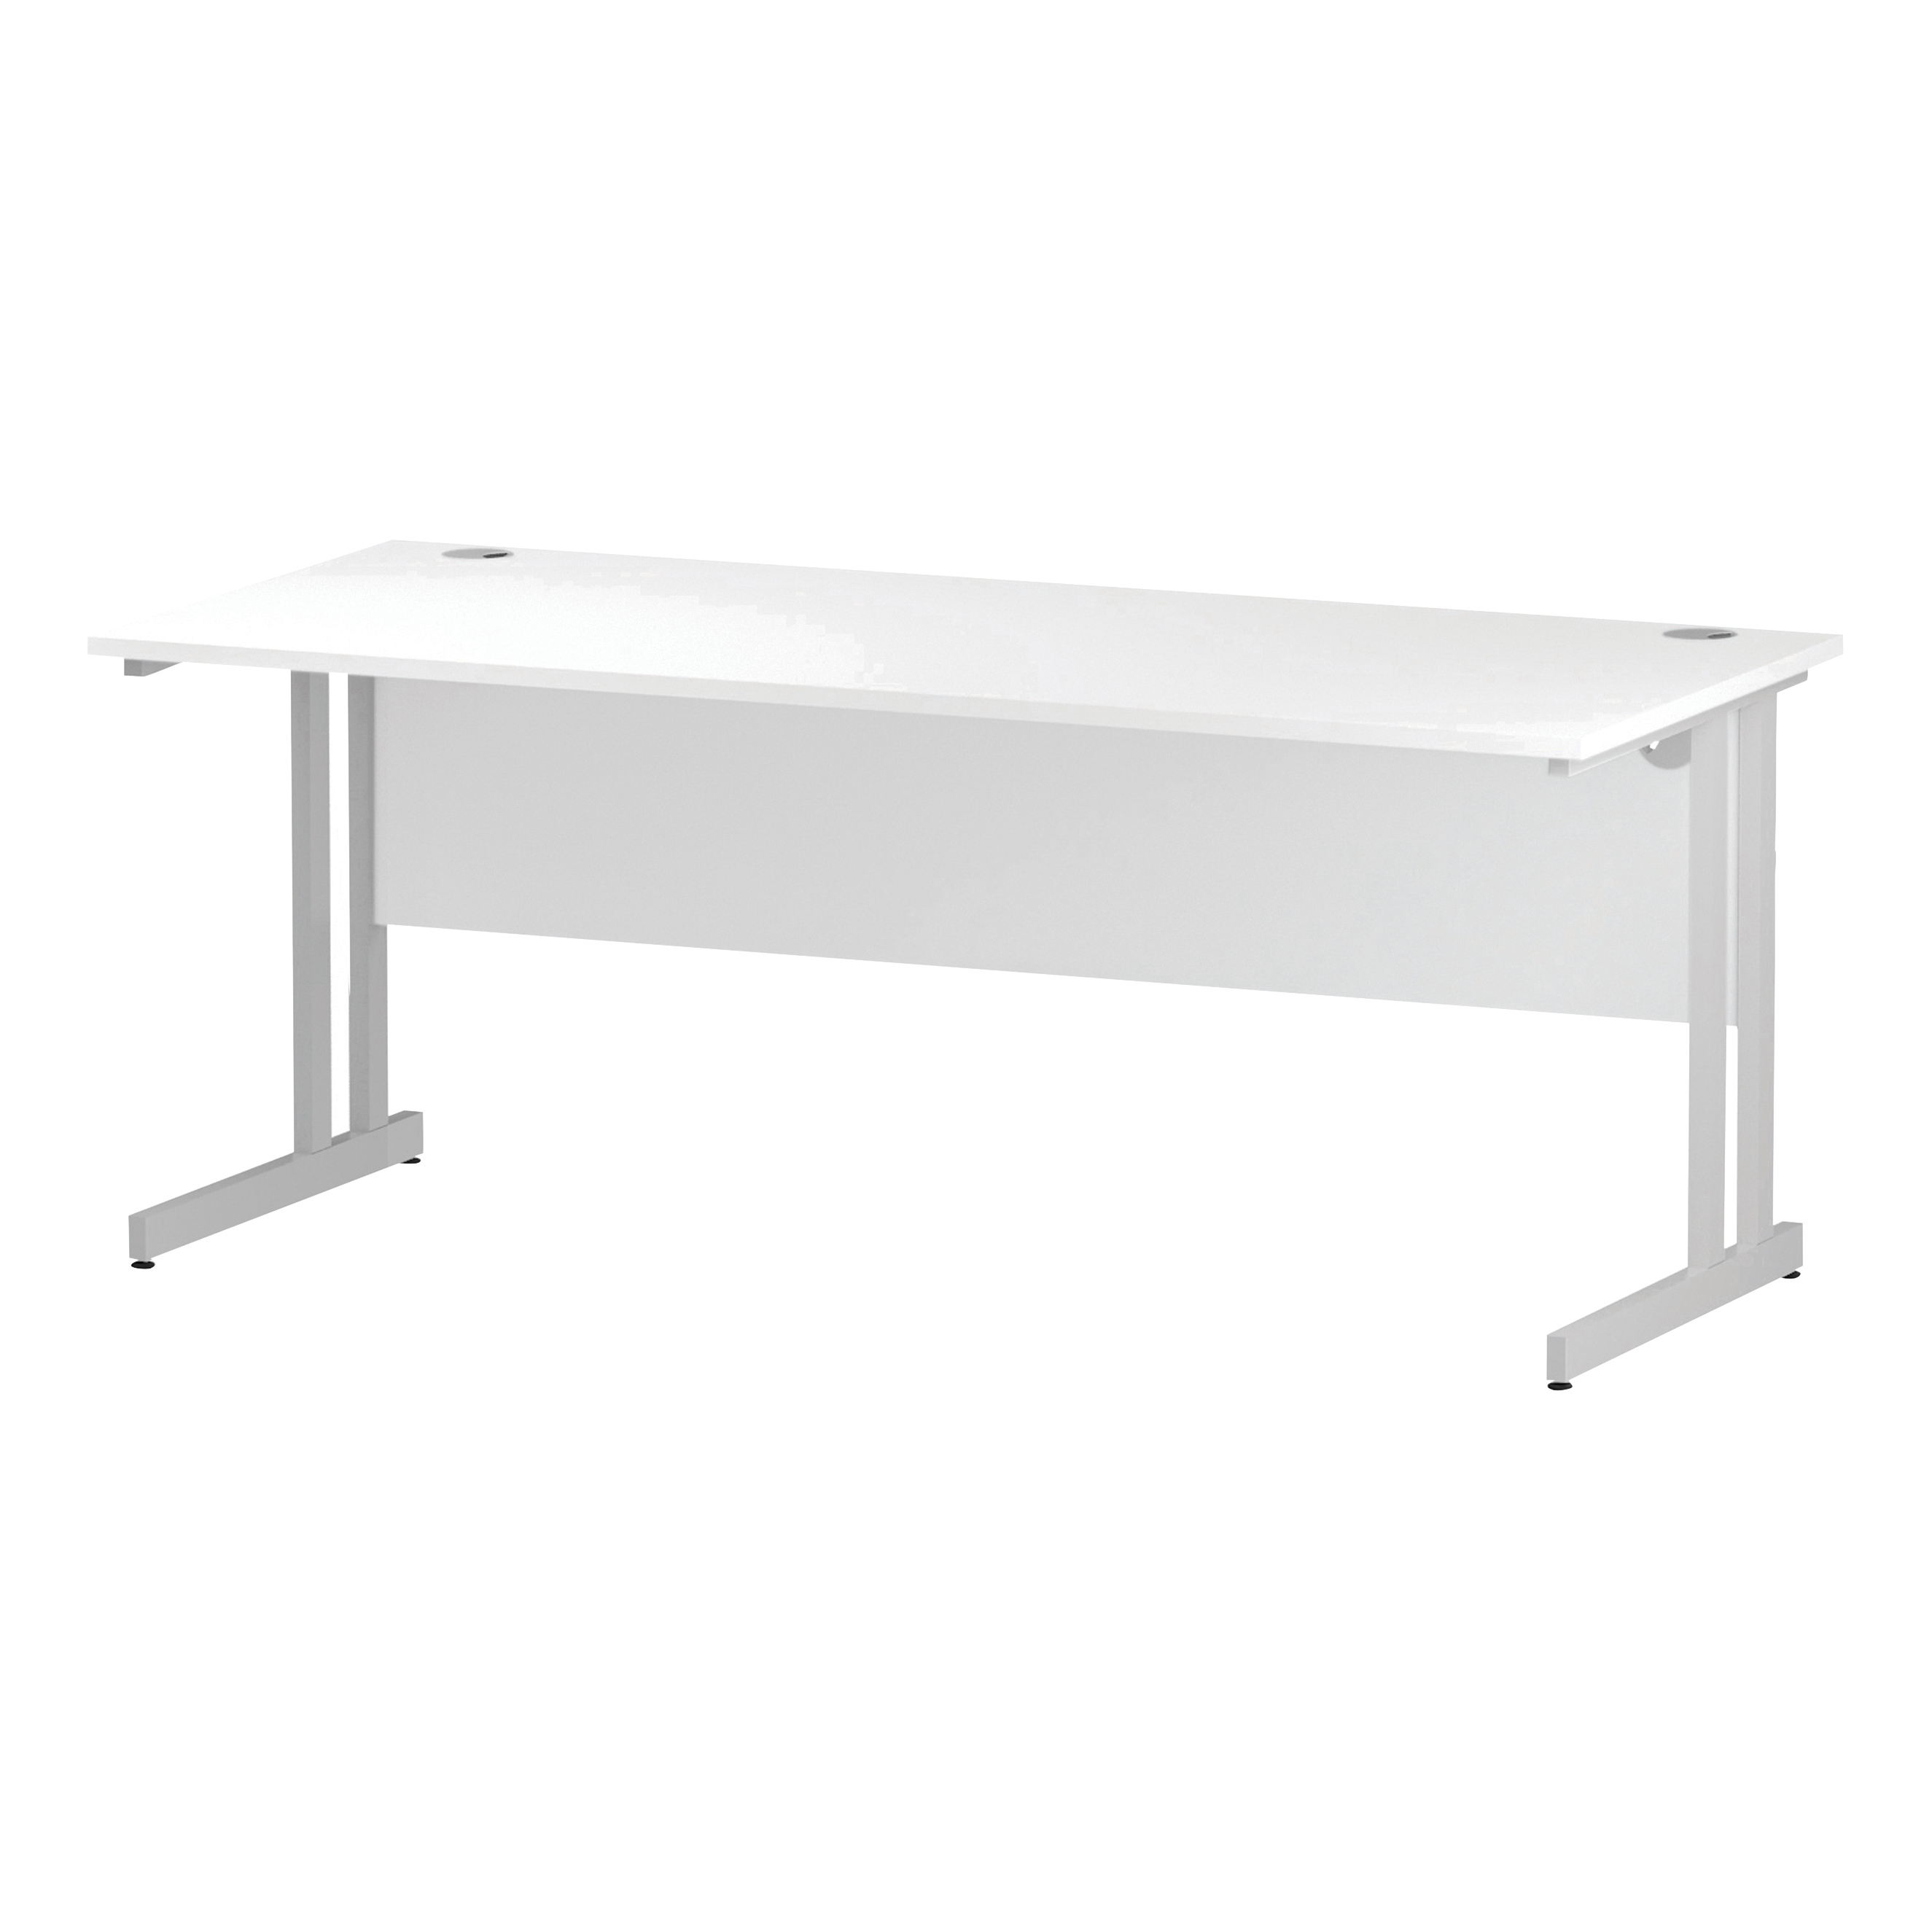 Trexus Rectangular Slim Desk White Cantilever Leg 1800x600mm White Ref I002204